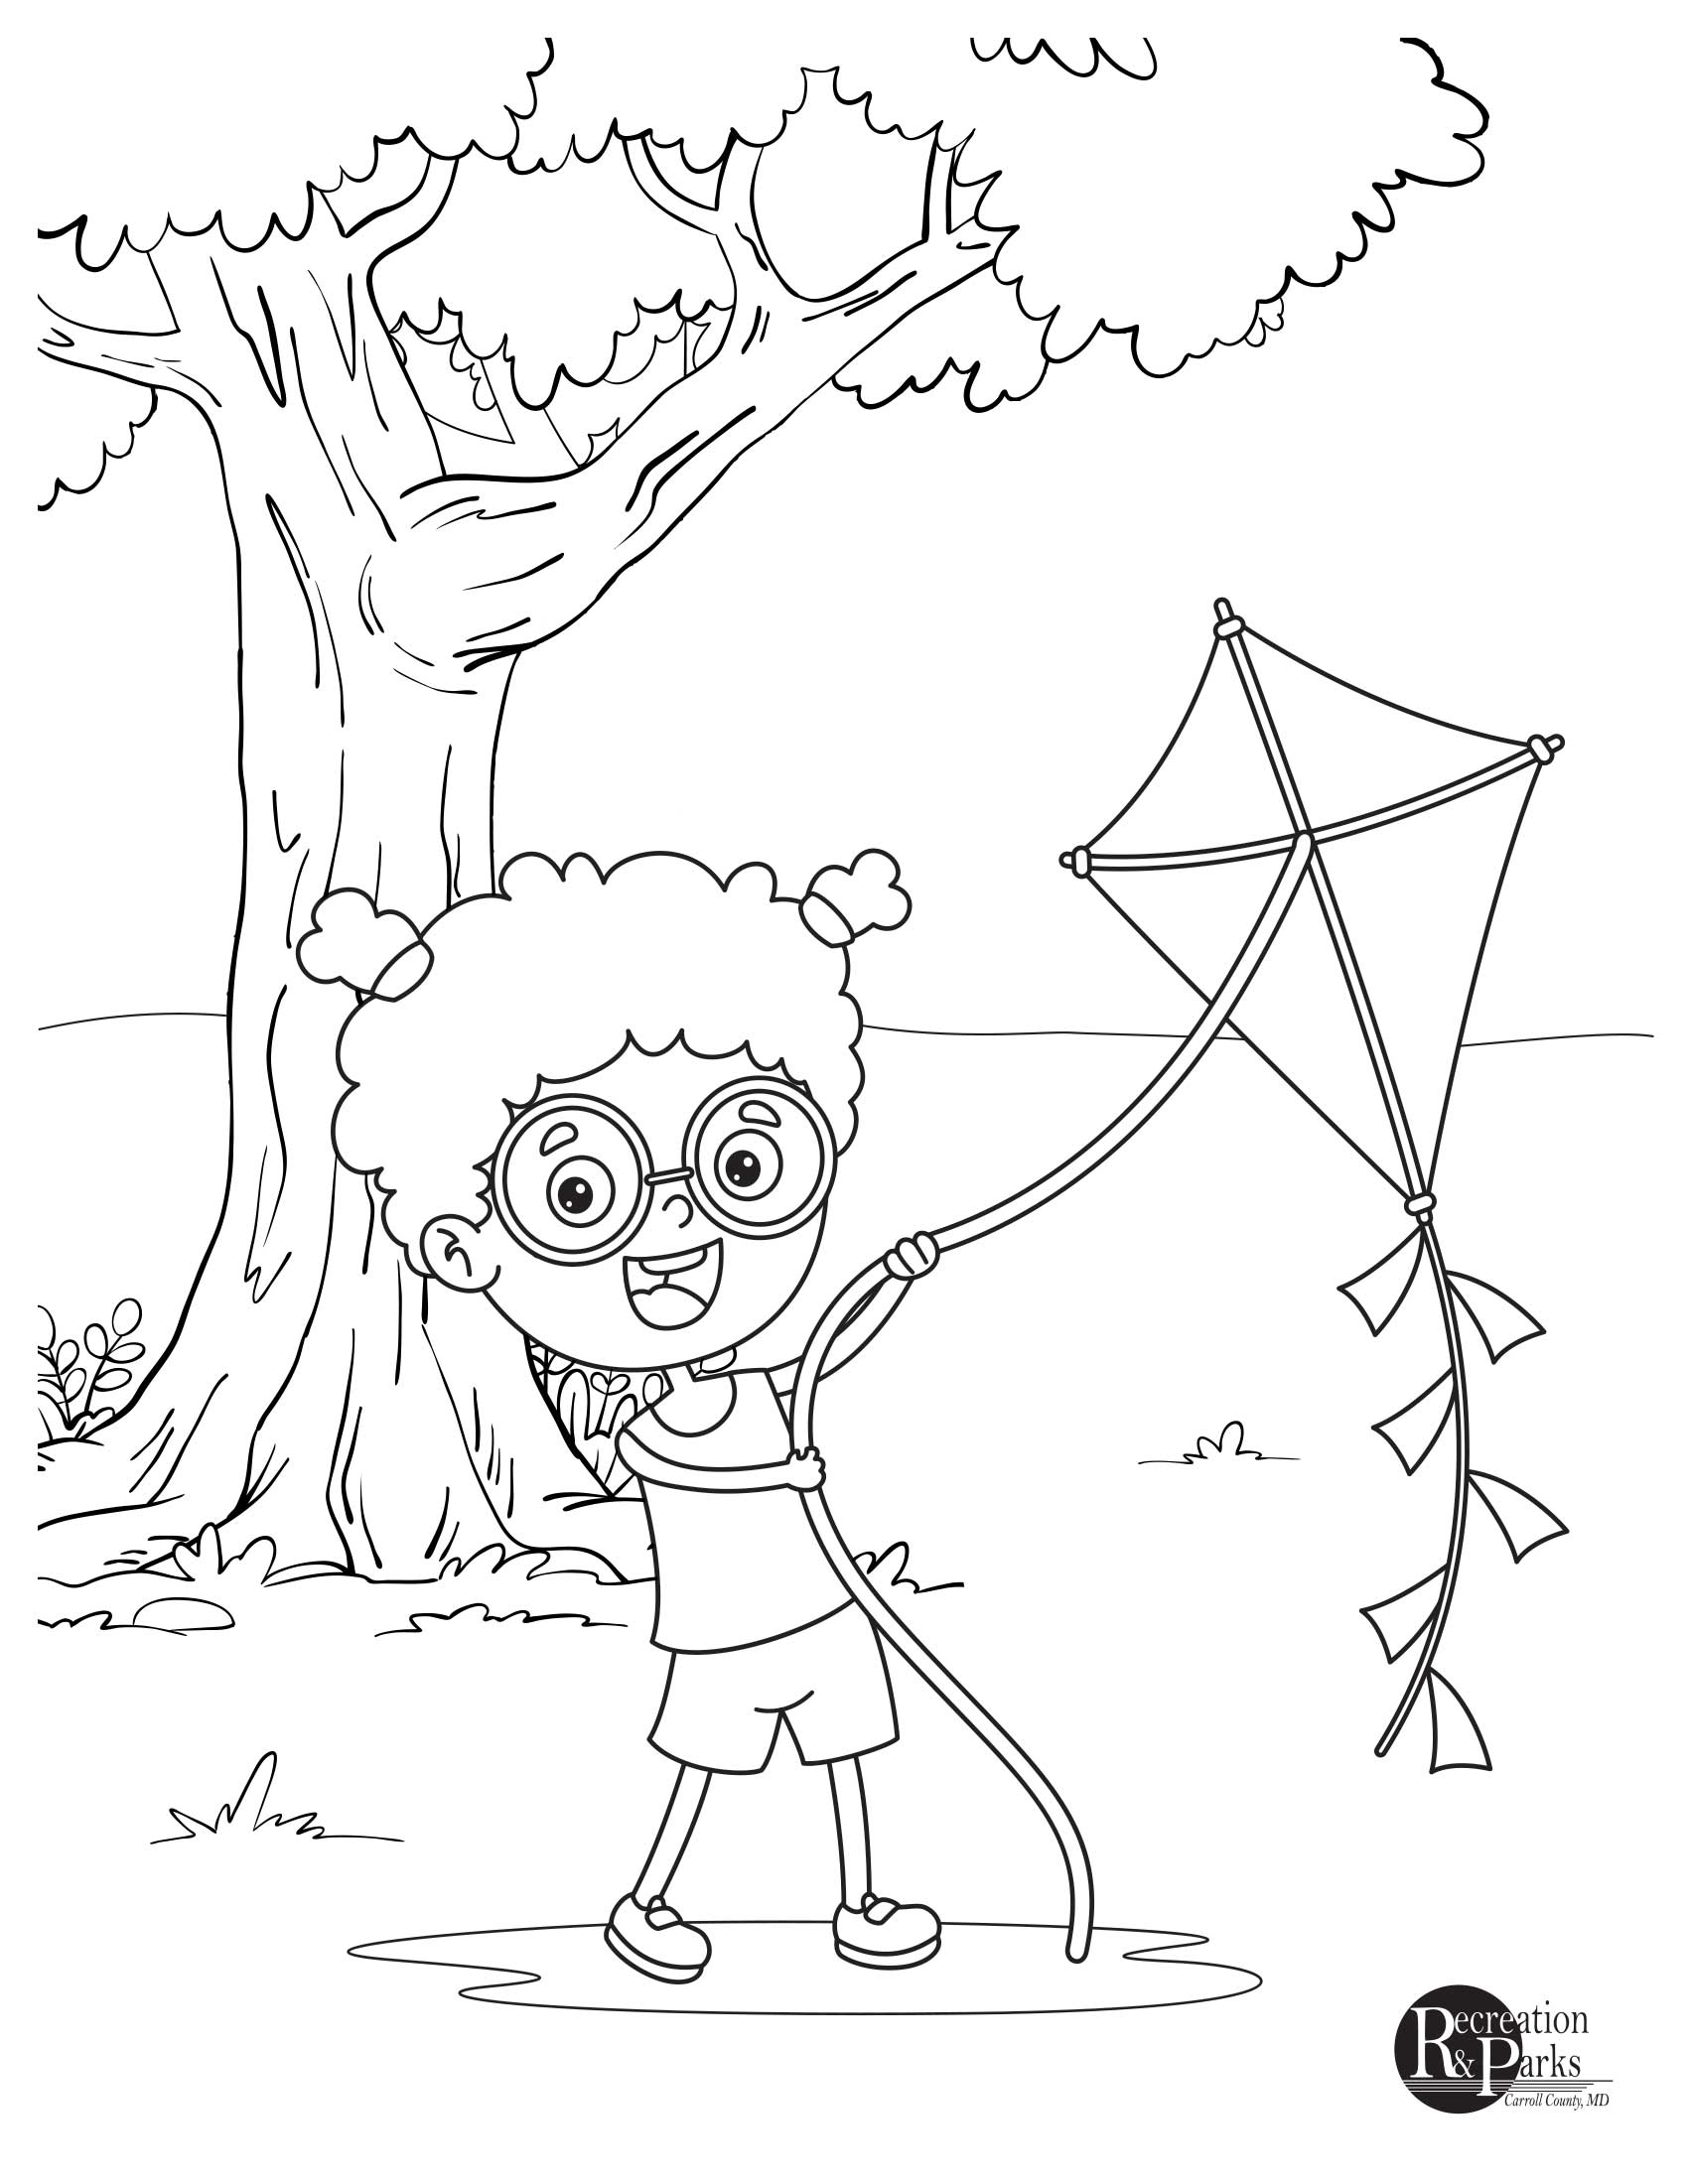 fly a kite coloring let39s go fly a kite coloring page print color fun kite a coloring fly